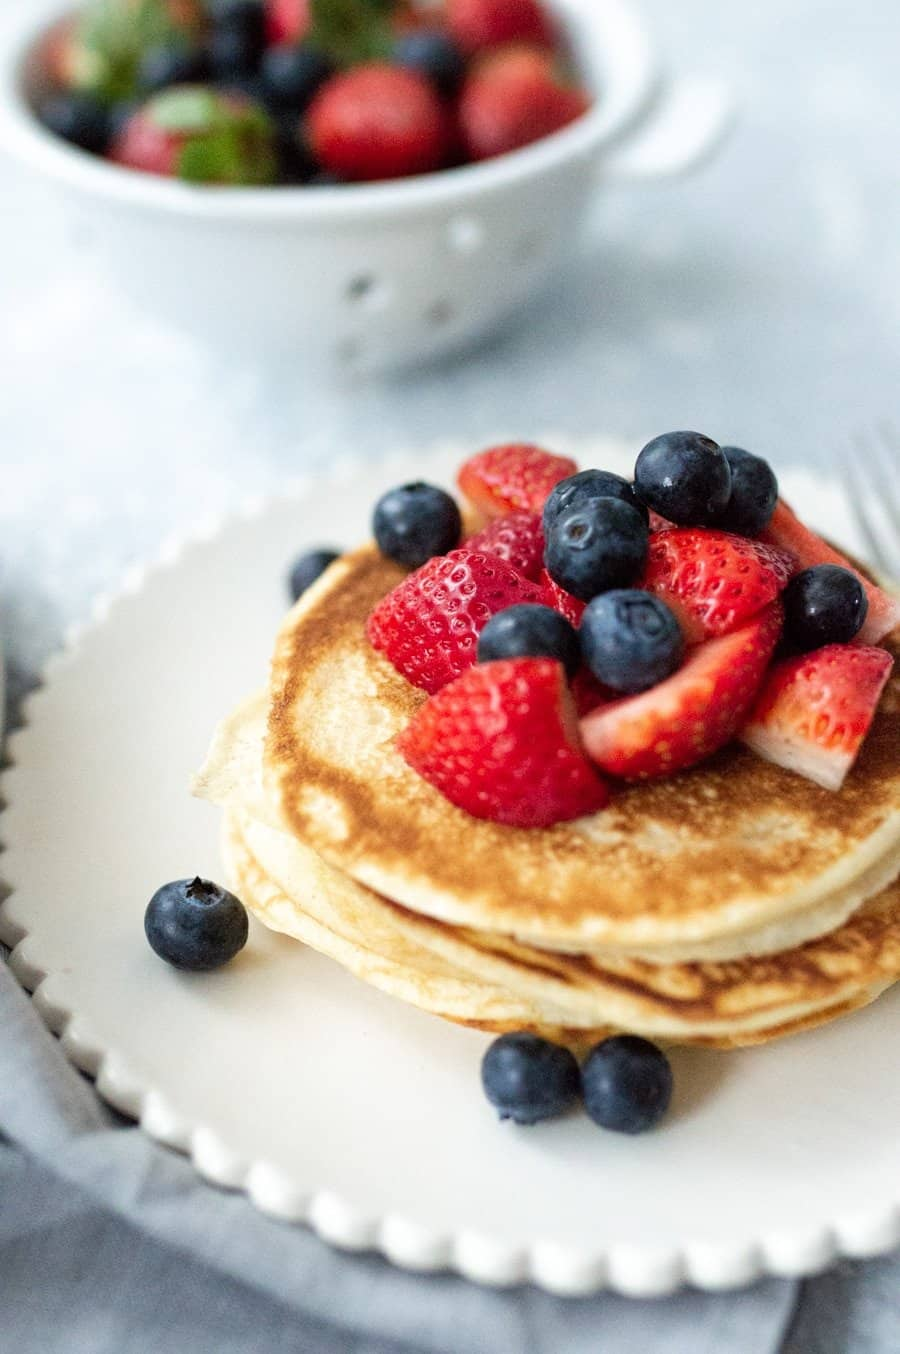 Scalloped plate with a stack of pancakes topped with strawberries and blueberries. In the background is a colander with more strawberries and blueberries